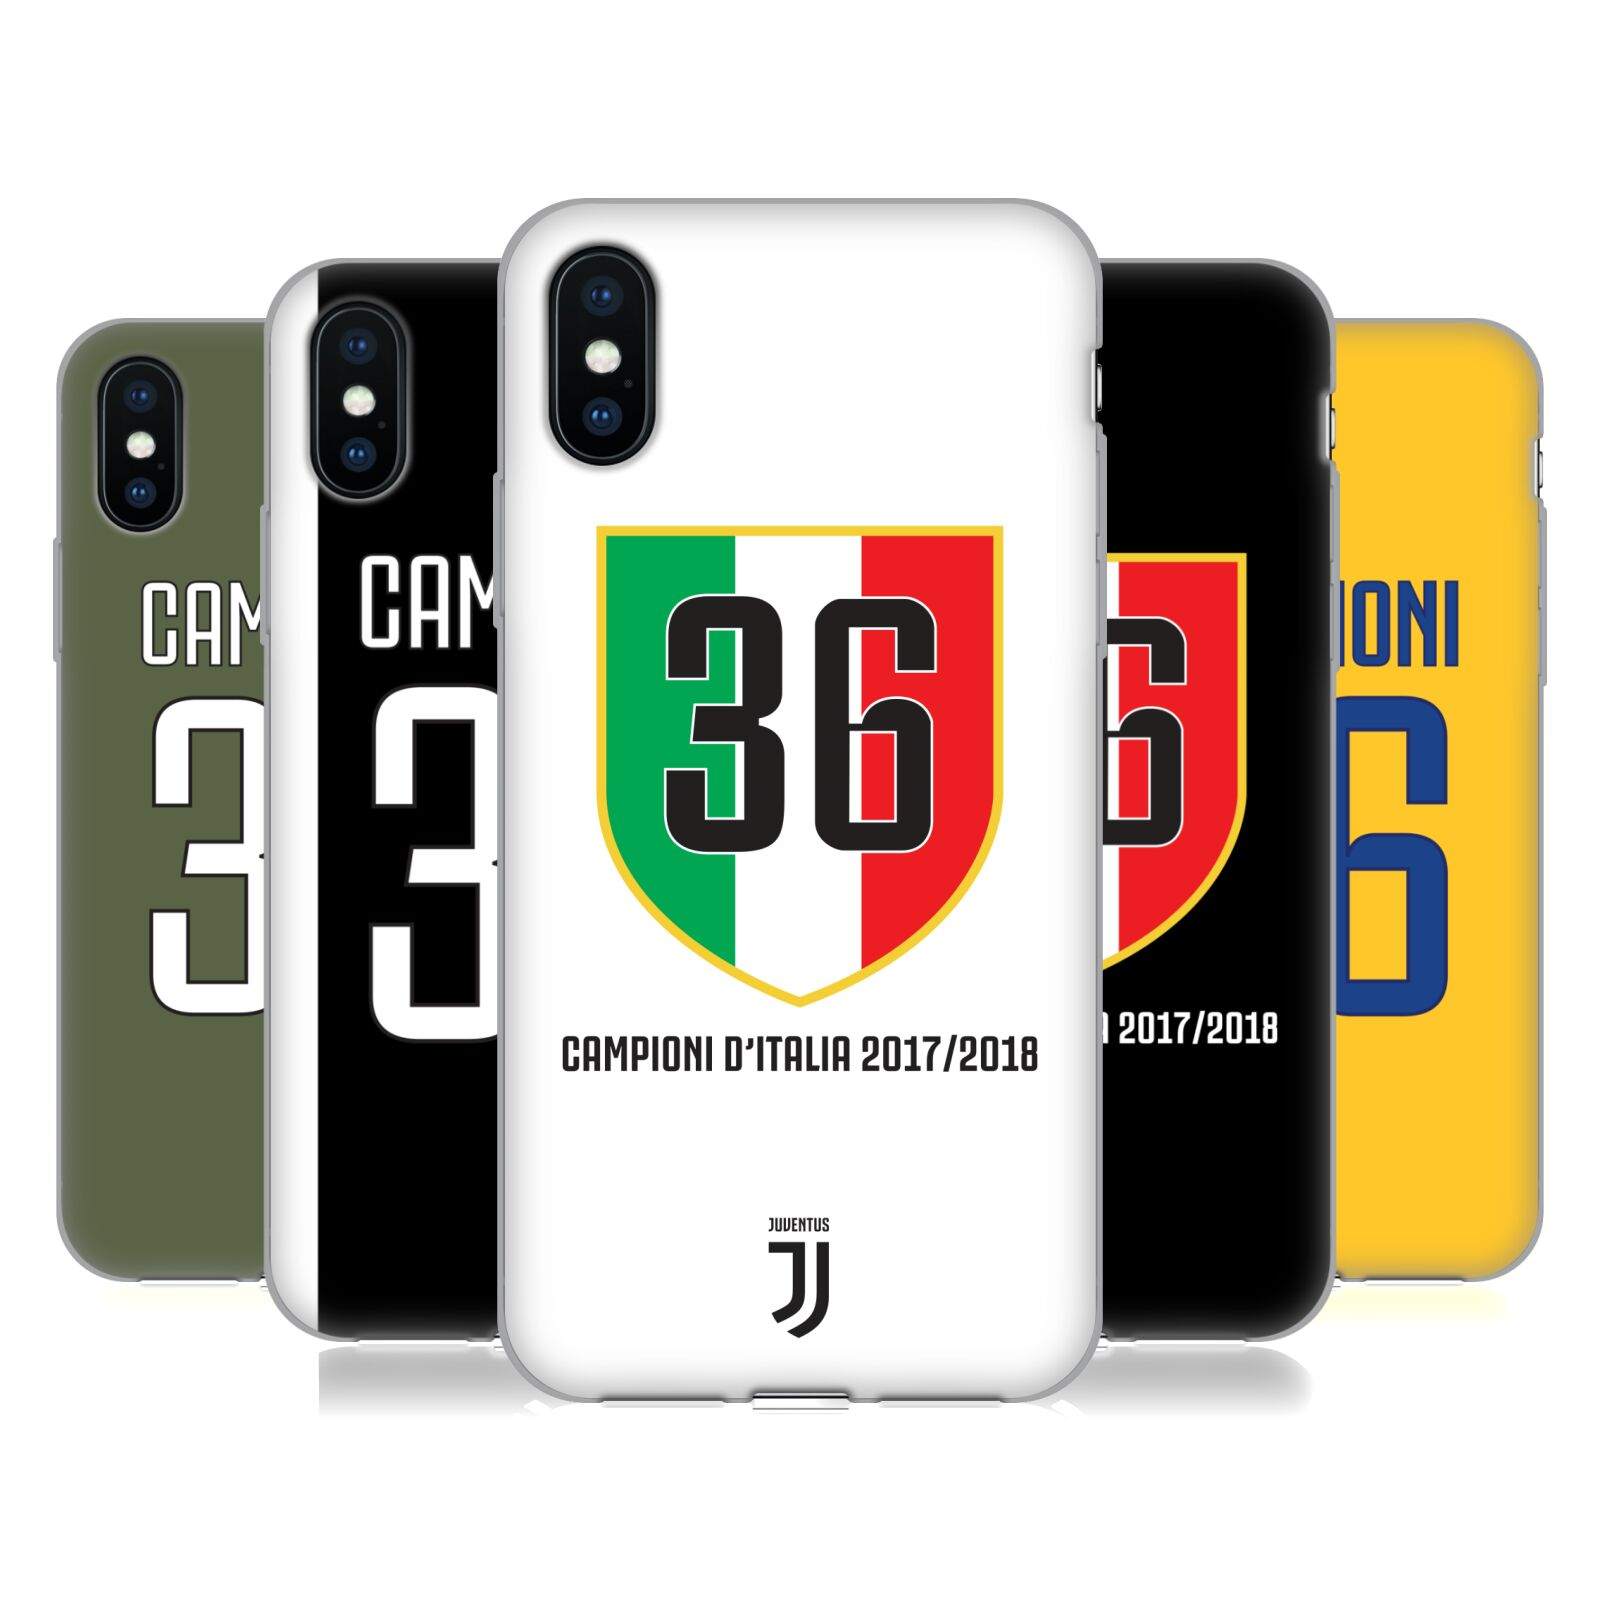 Juventus Football Club 2018 Campioni D'Italia